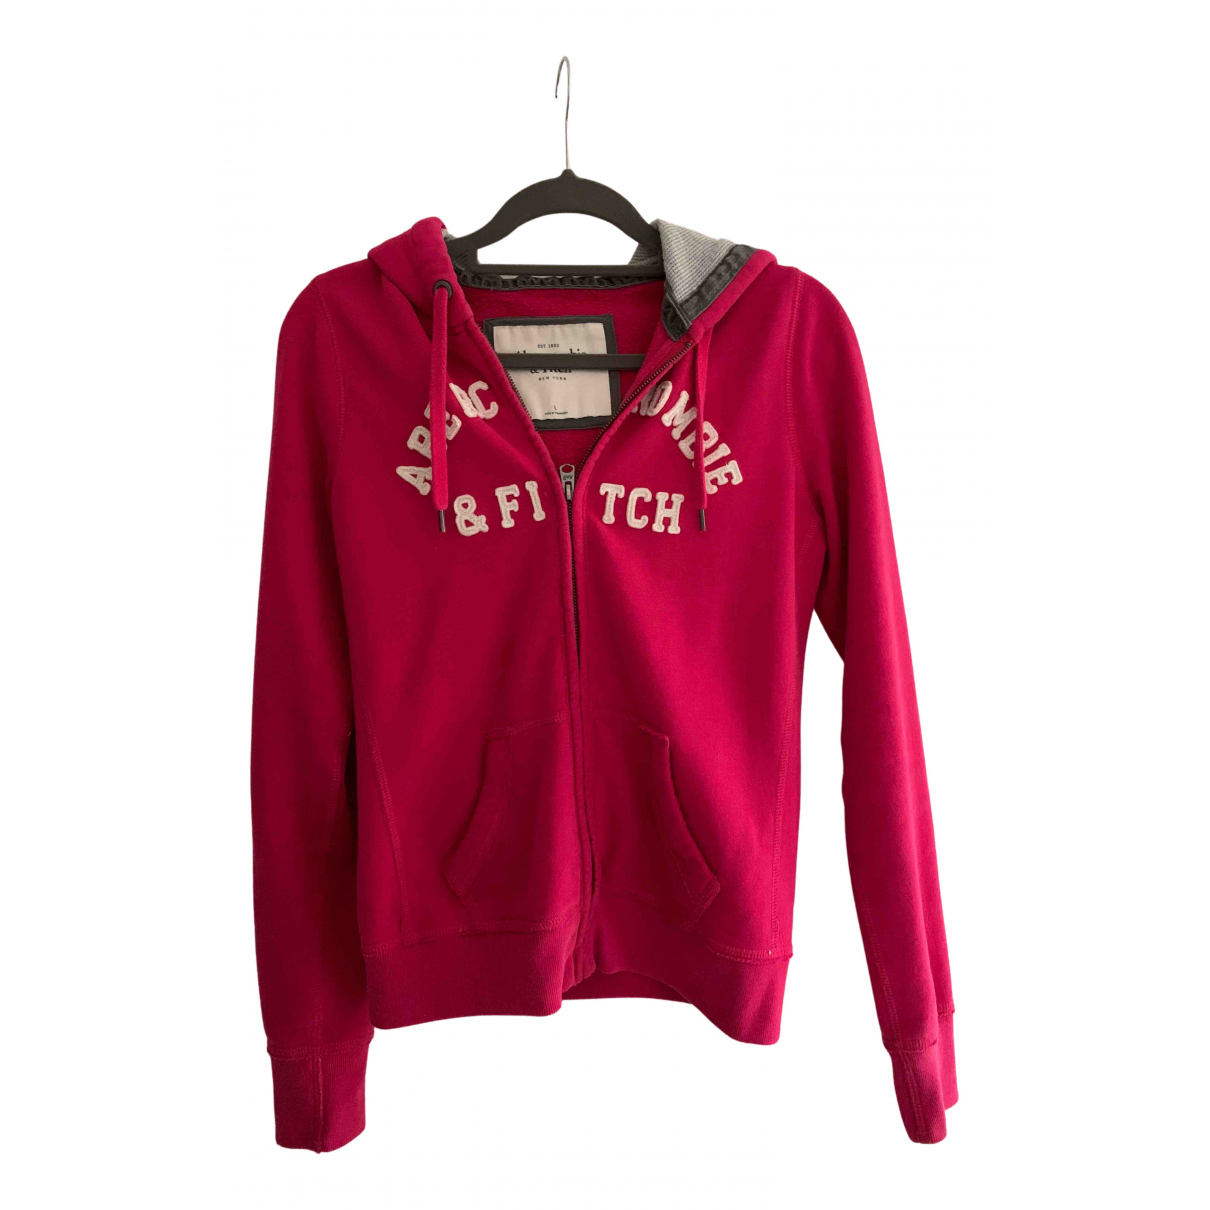 Jersey Abercrombie & Fitch